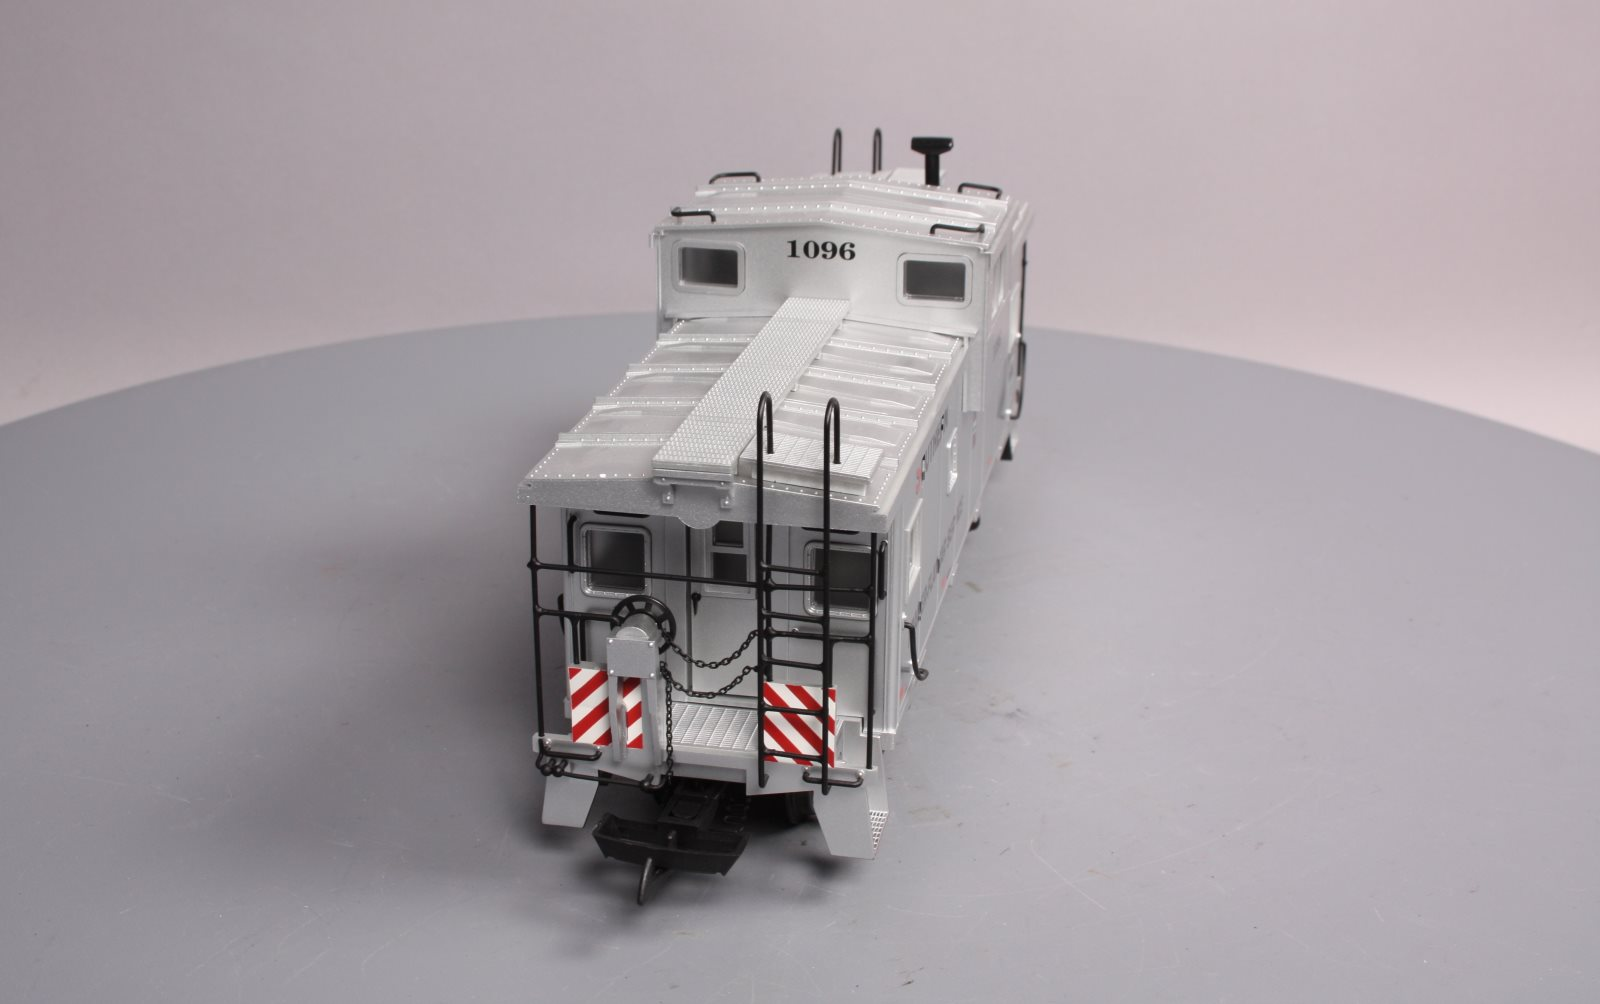 Buy USA Trains 12102 G Southern Pacific Illuminated Caboose - Metal